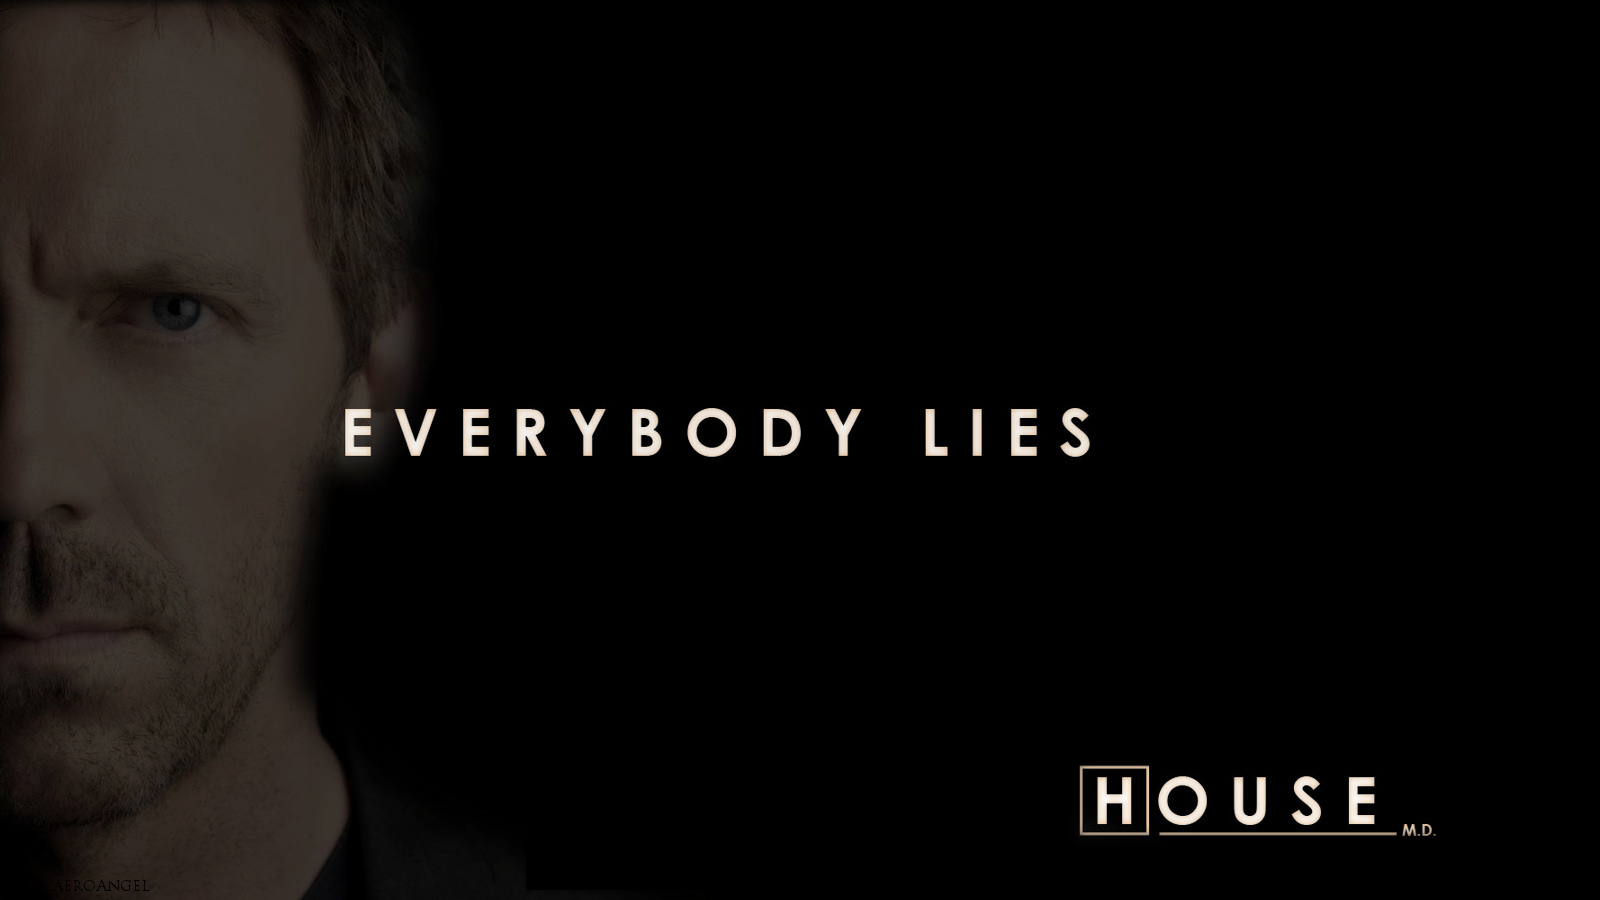 ... Free House Md Everybody Lies ...